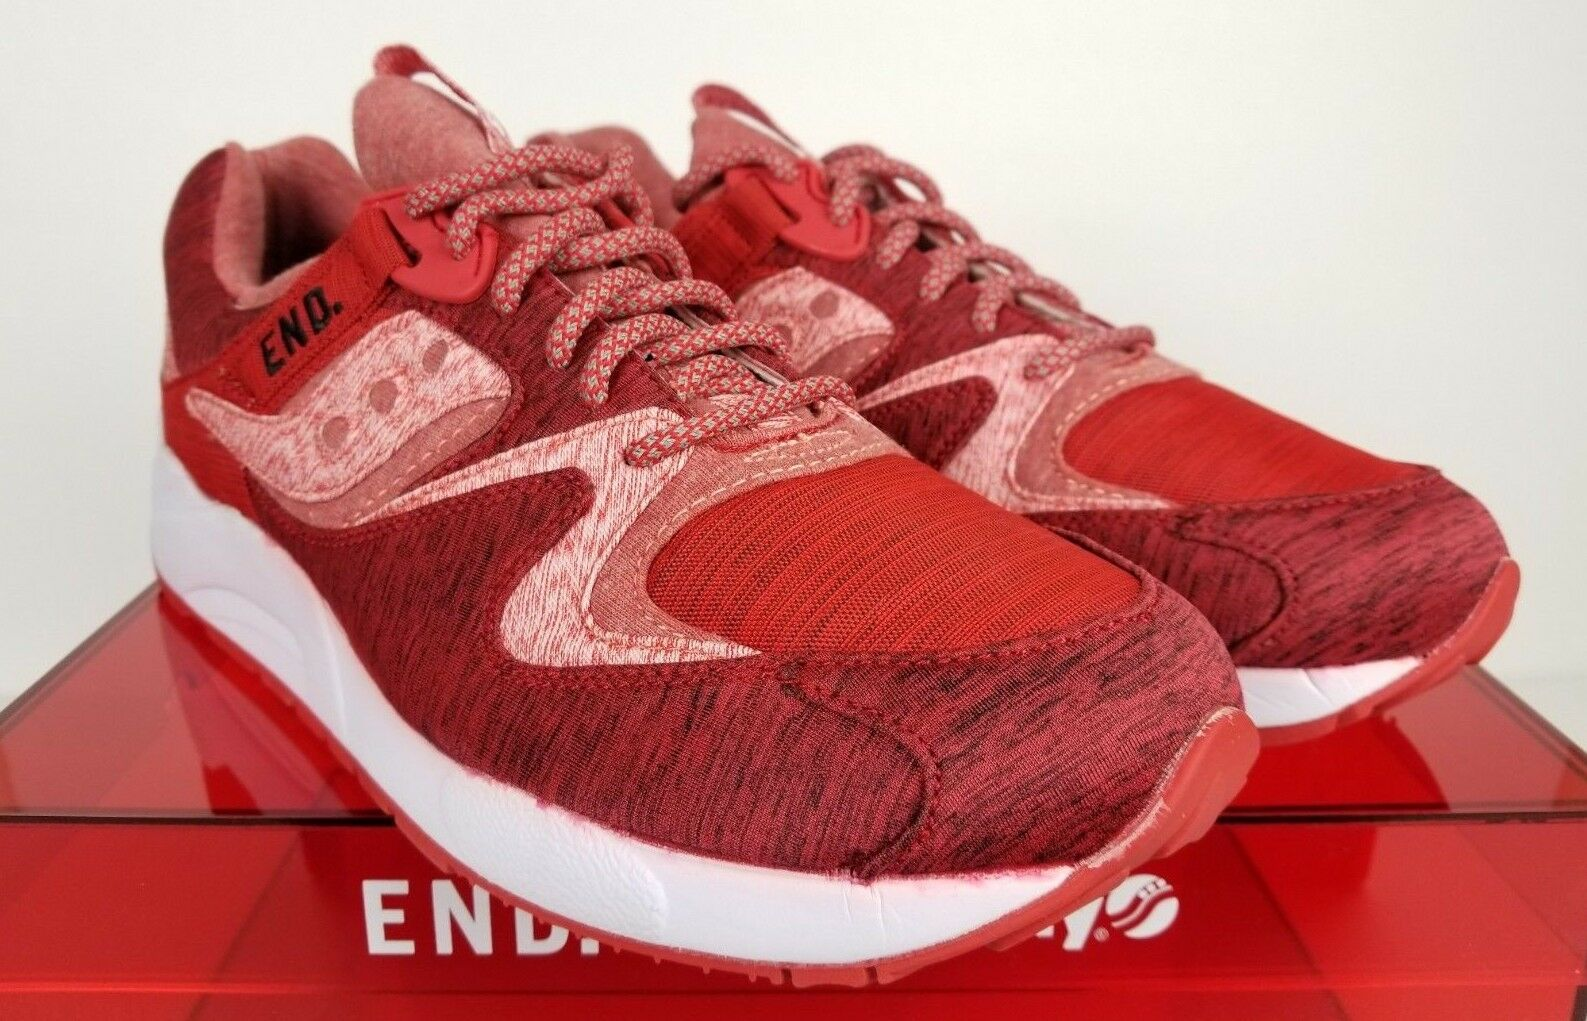 END x Saucony Grid 9000 rosso Noise rosso & bianca Dimensione 12